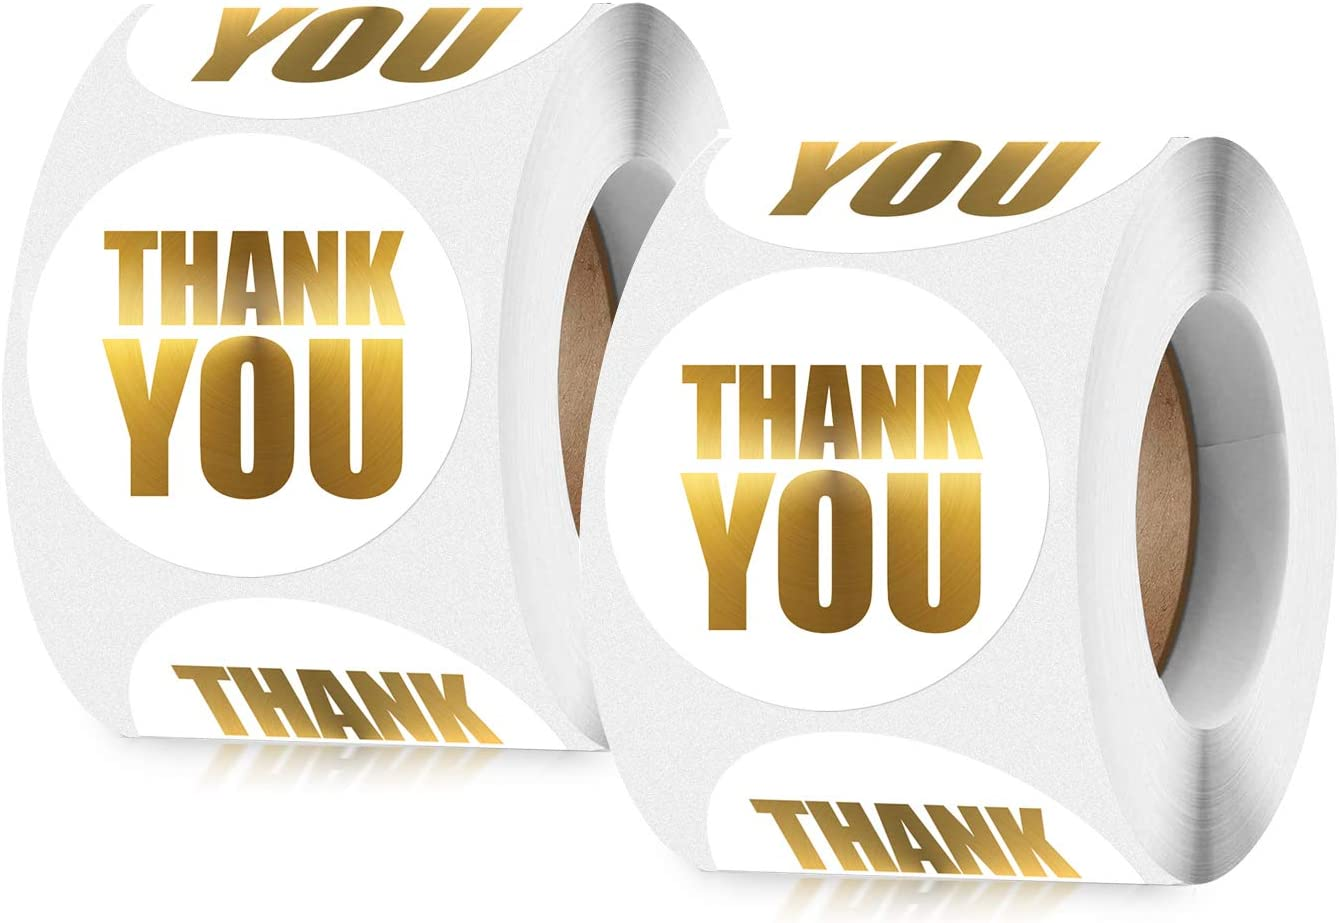 1 Inch Thank You Stickers Roll 1000pcs - White Gold Foil Small Business Adhesive Circle Labels, Perfect for Customer Appreciation, Envelope Seals, Packaging, Gift Bags, Bakery Cupcakes Decor, Wedding